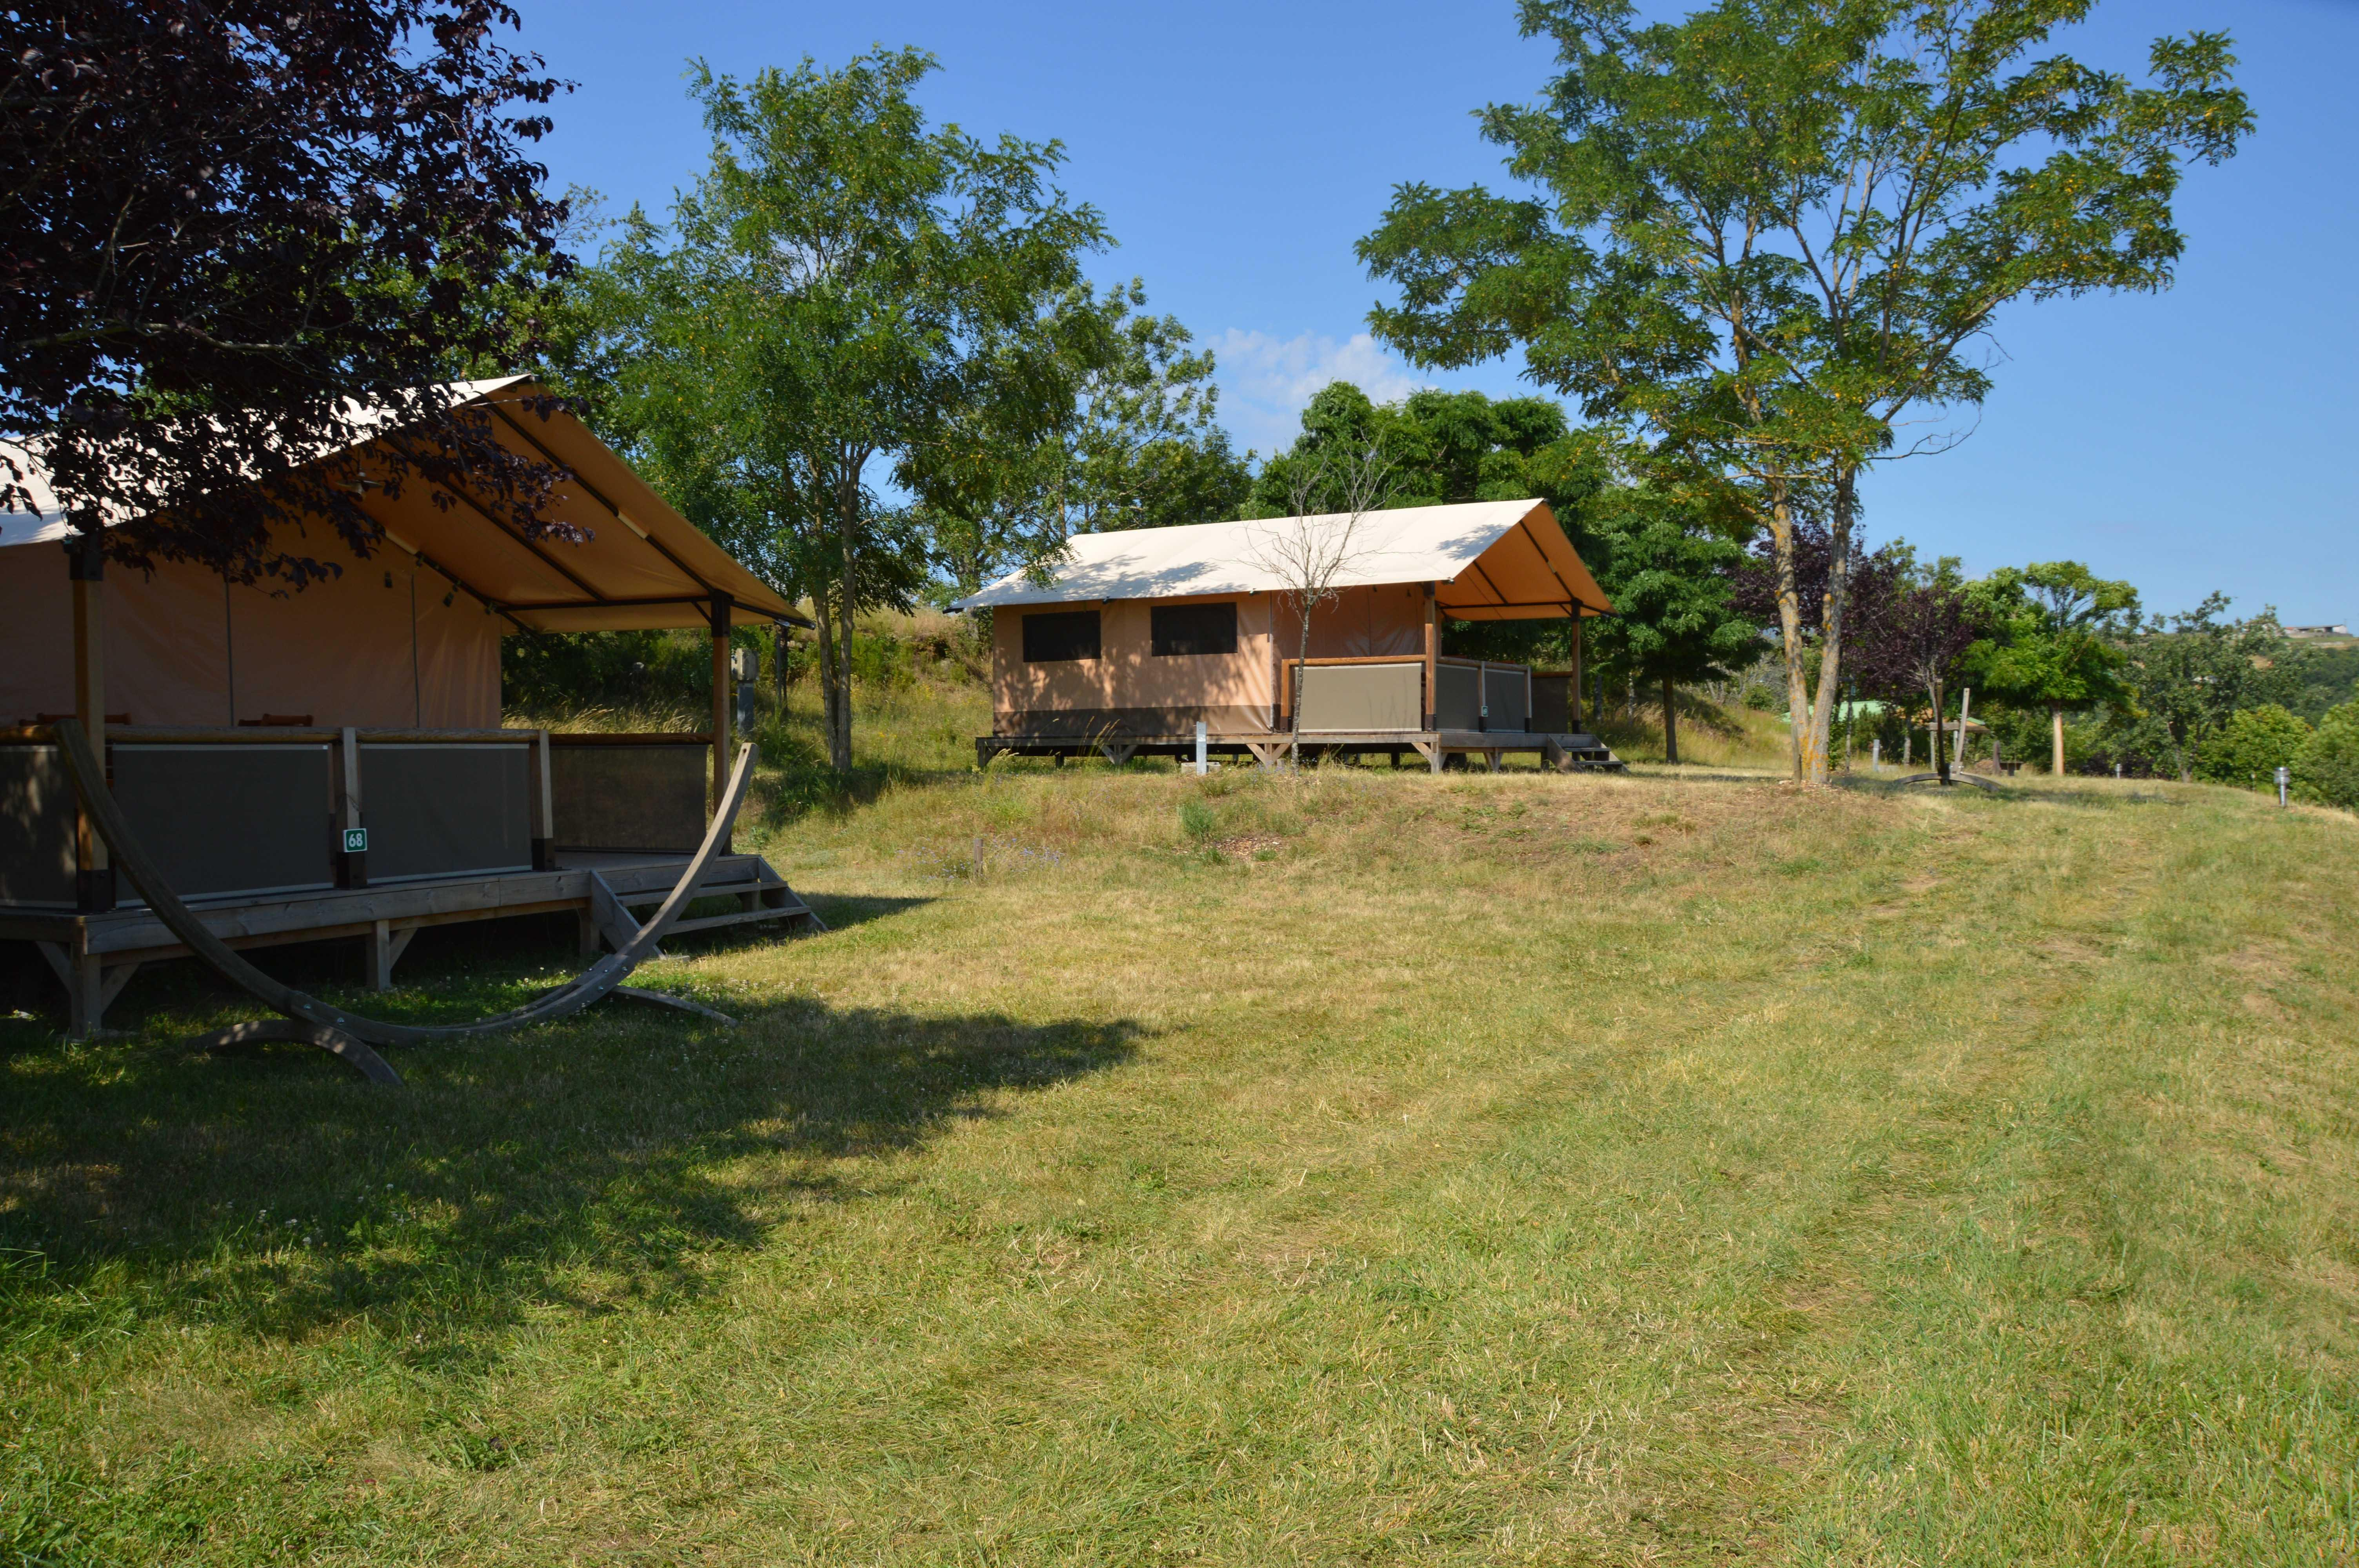 Accommodation - Chalet Lodge Victoria With Private Facilities - Sites et Paysages L'Oasis